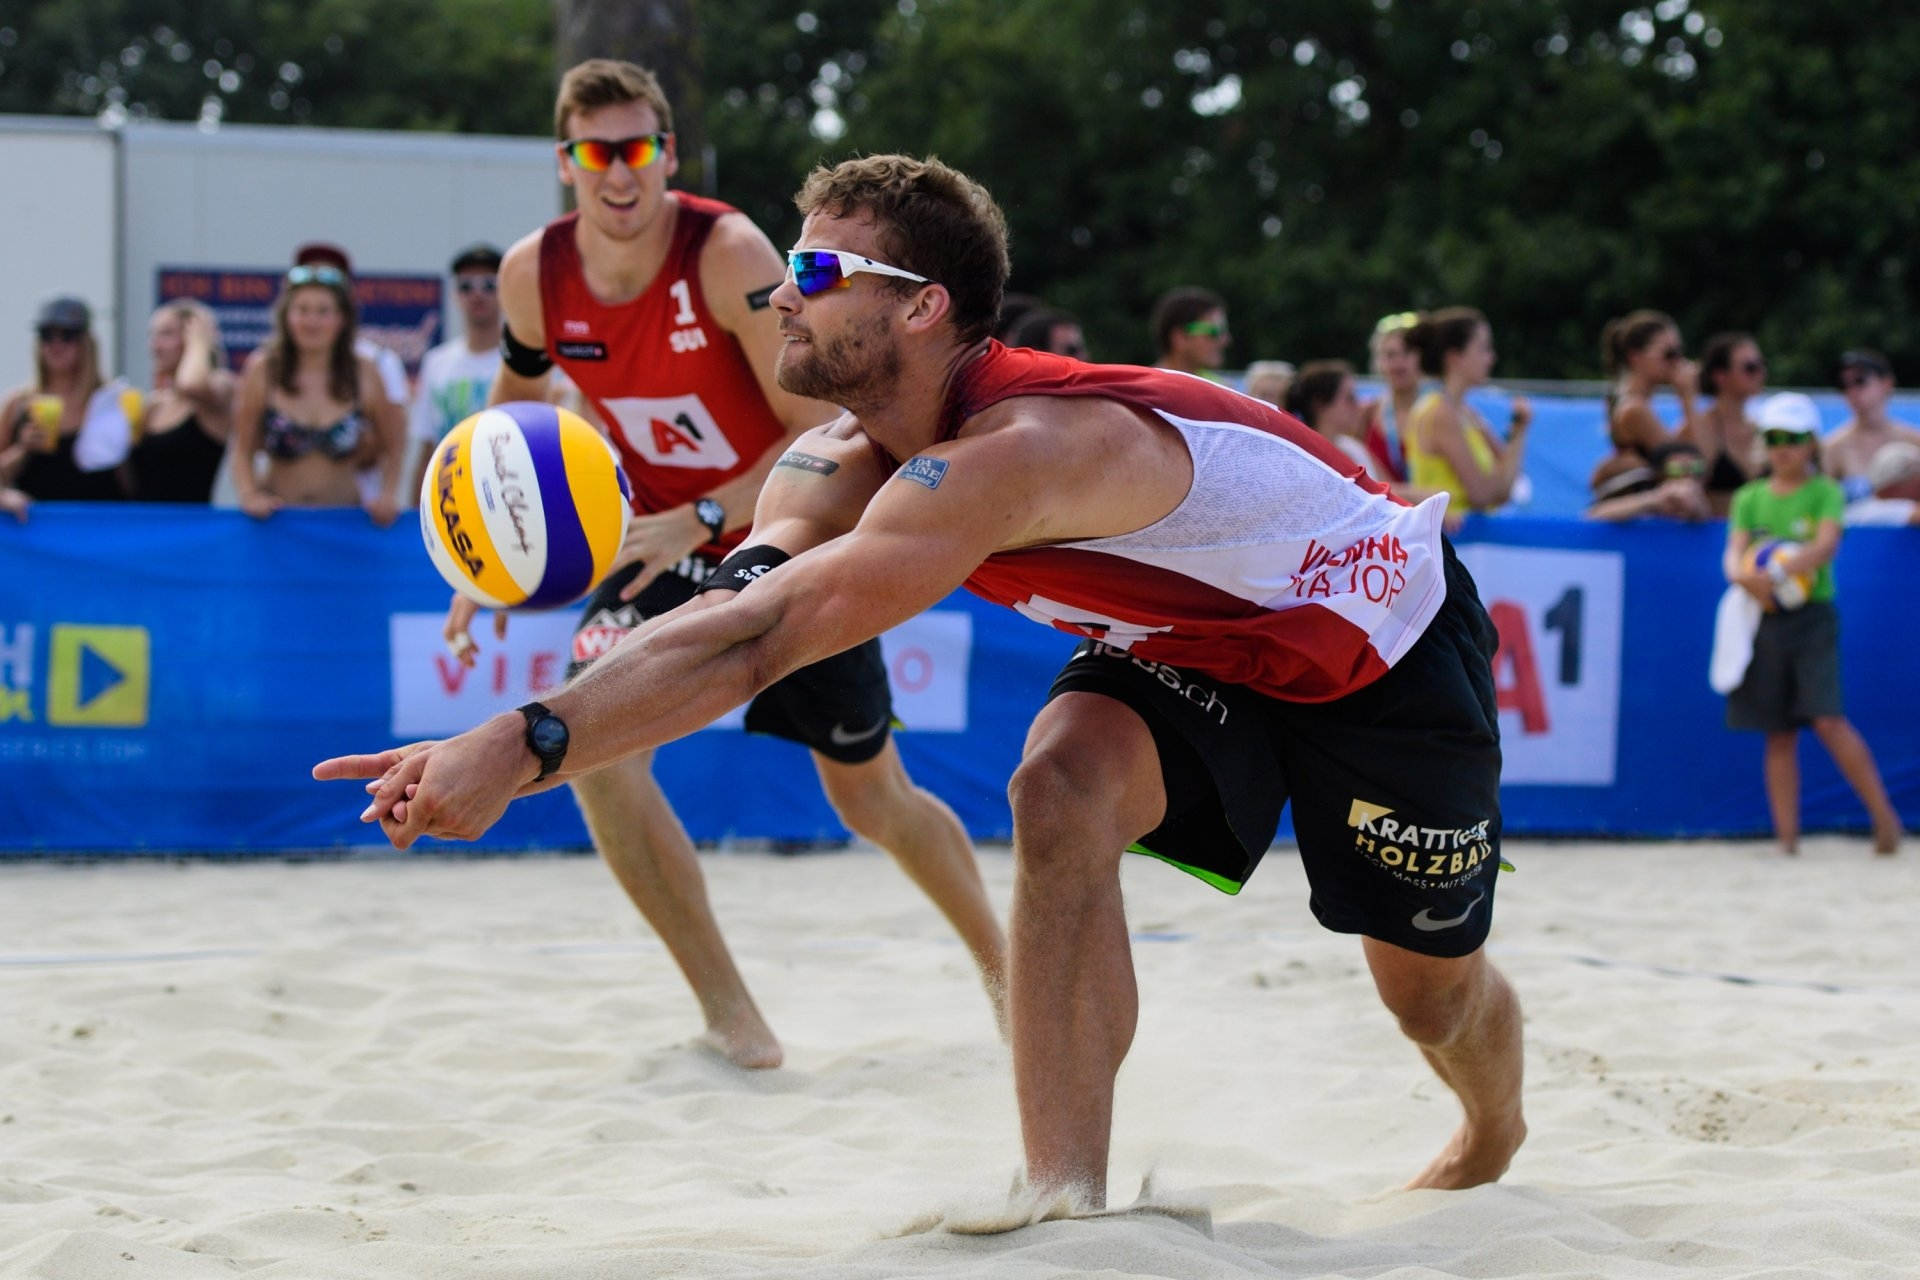 Swiss Marco Krattiger and Nico Beeler will be the next opponents of the Grimalts (Photocredit: FIVB)